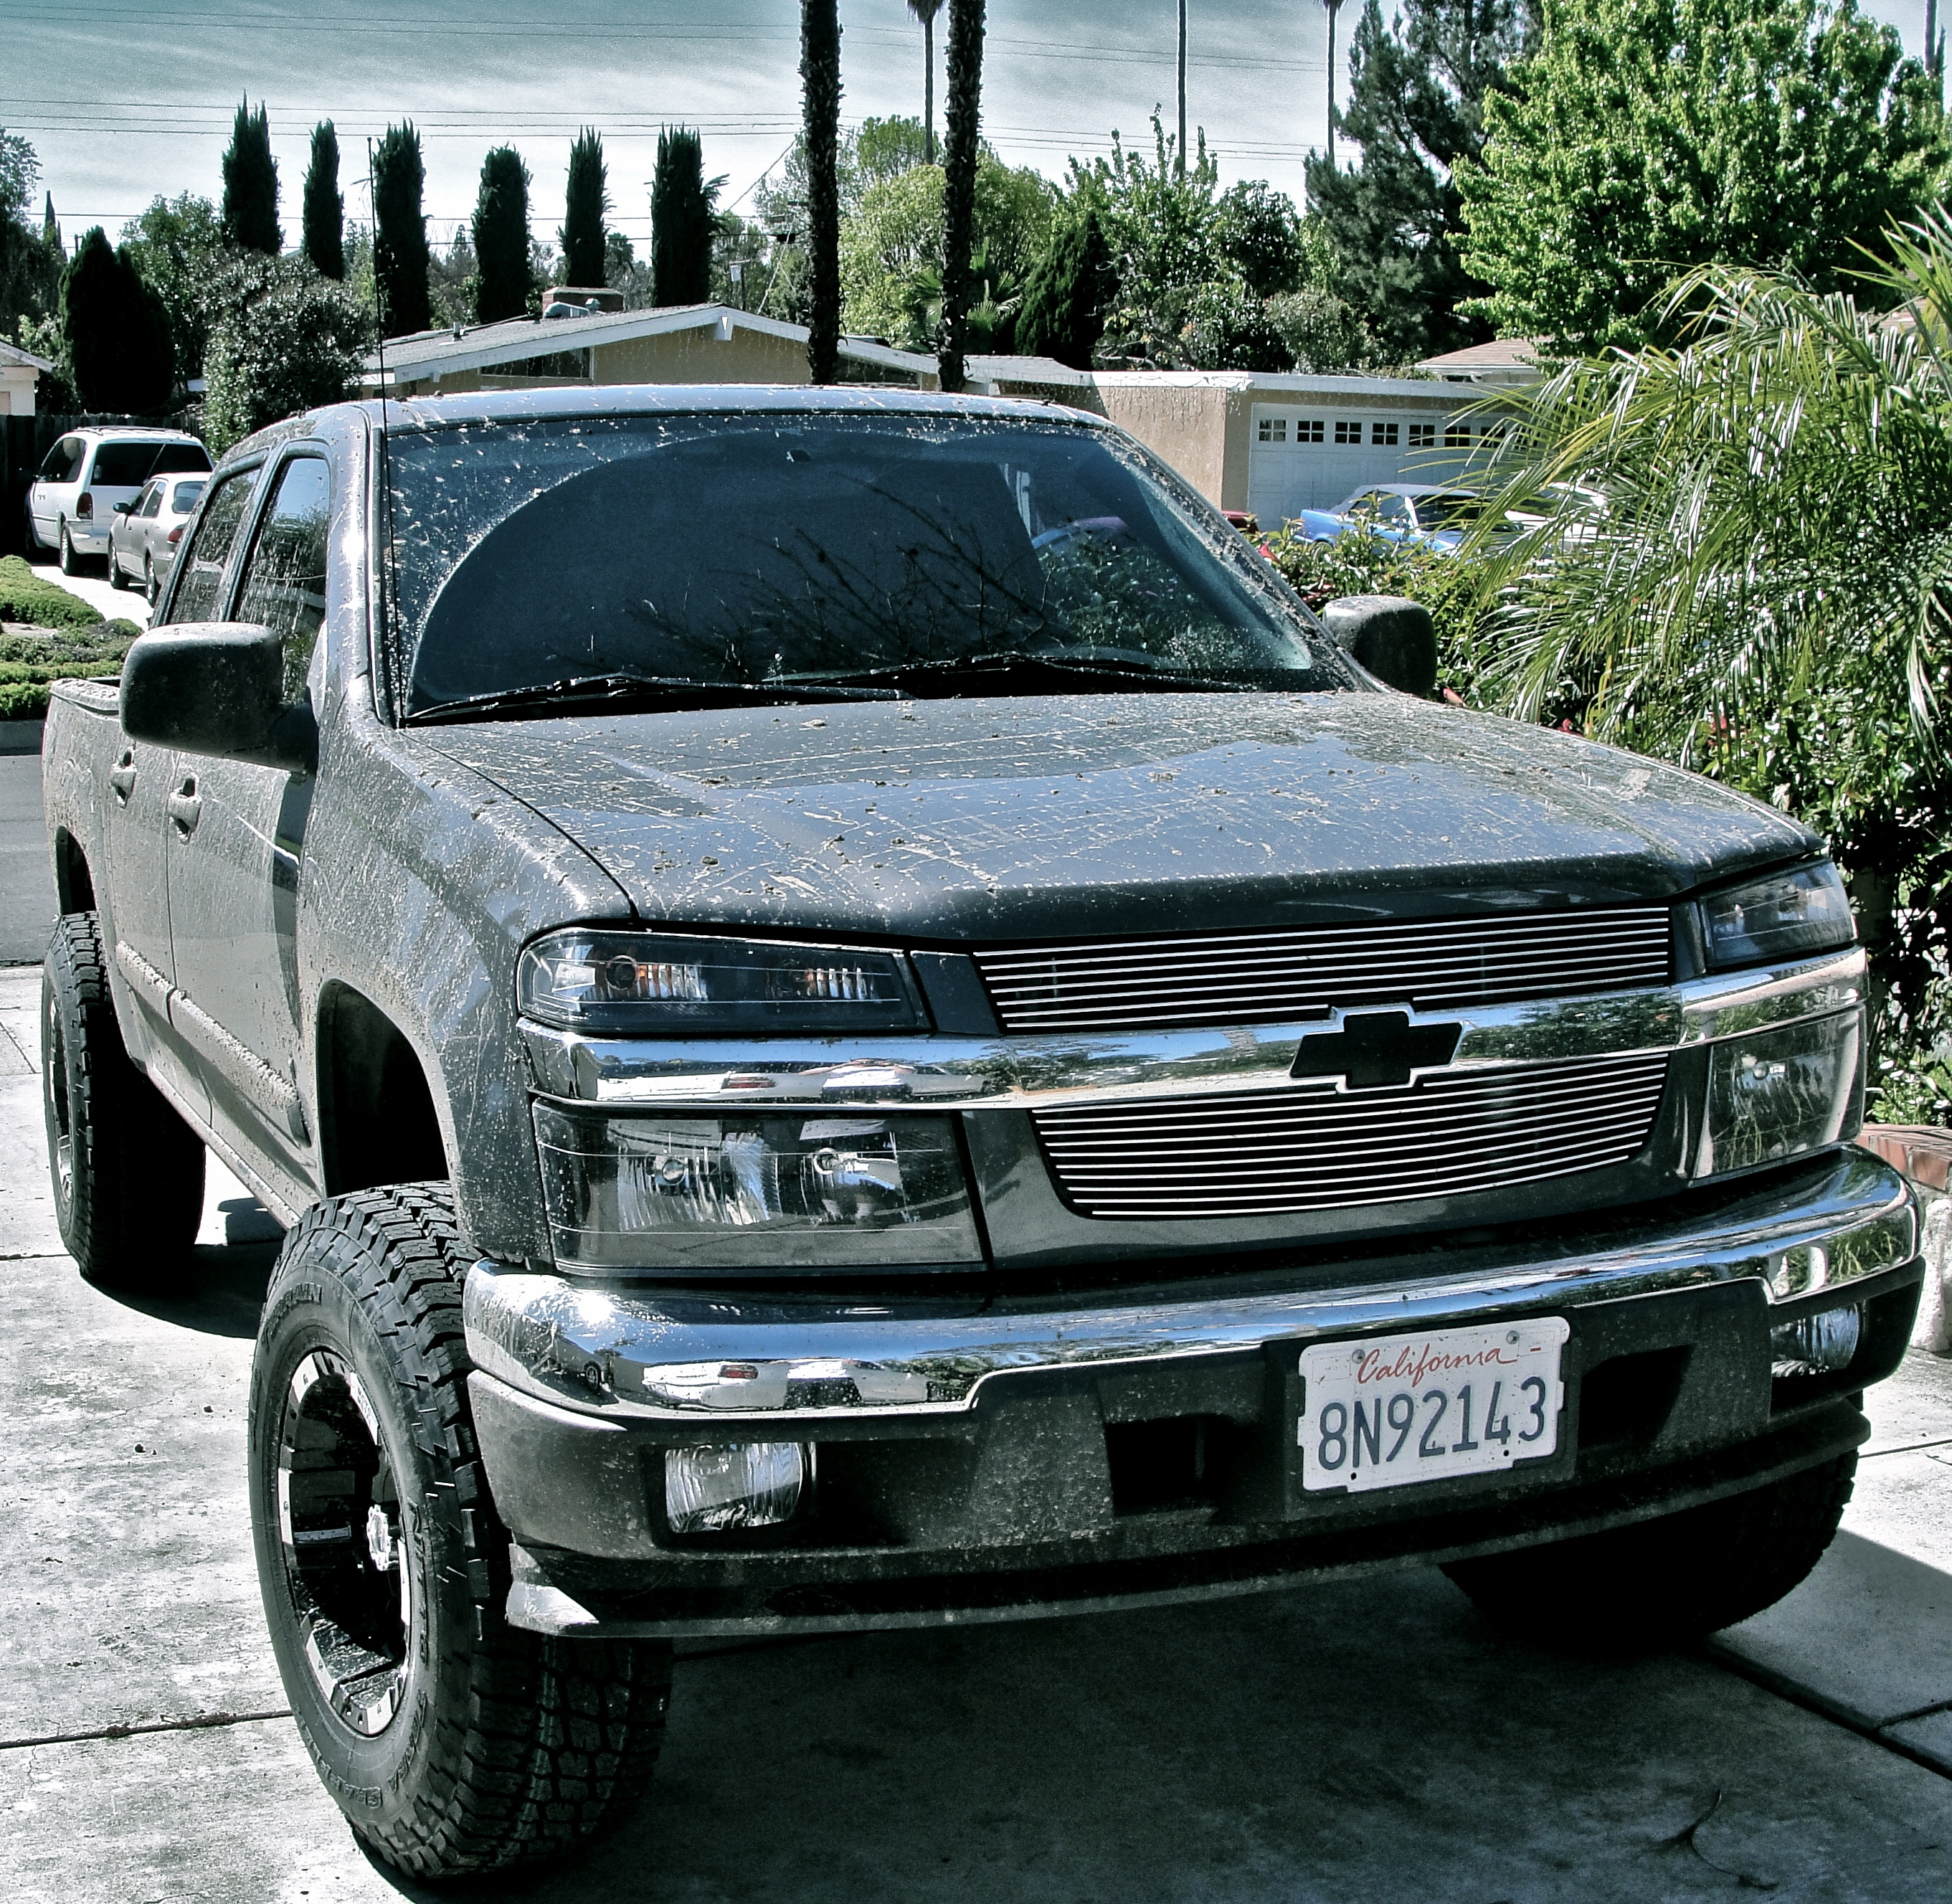 Edvalle 2008 Chevrolet Colorado Regular Cab Specs, Photos